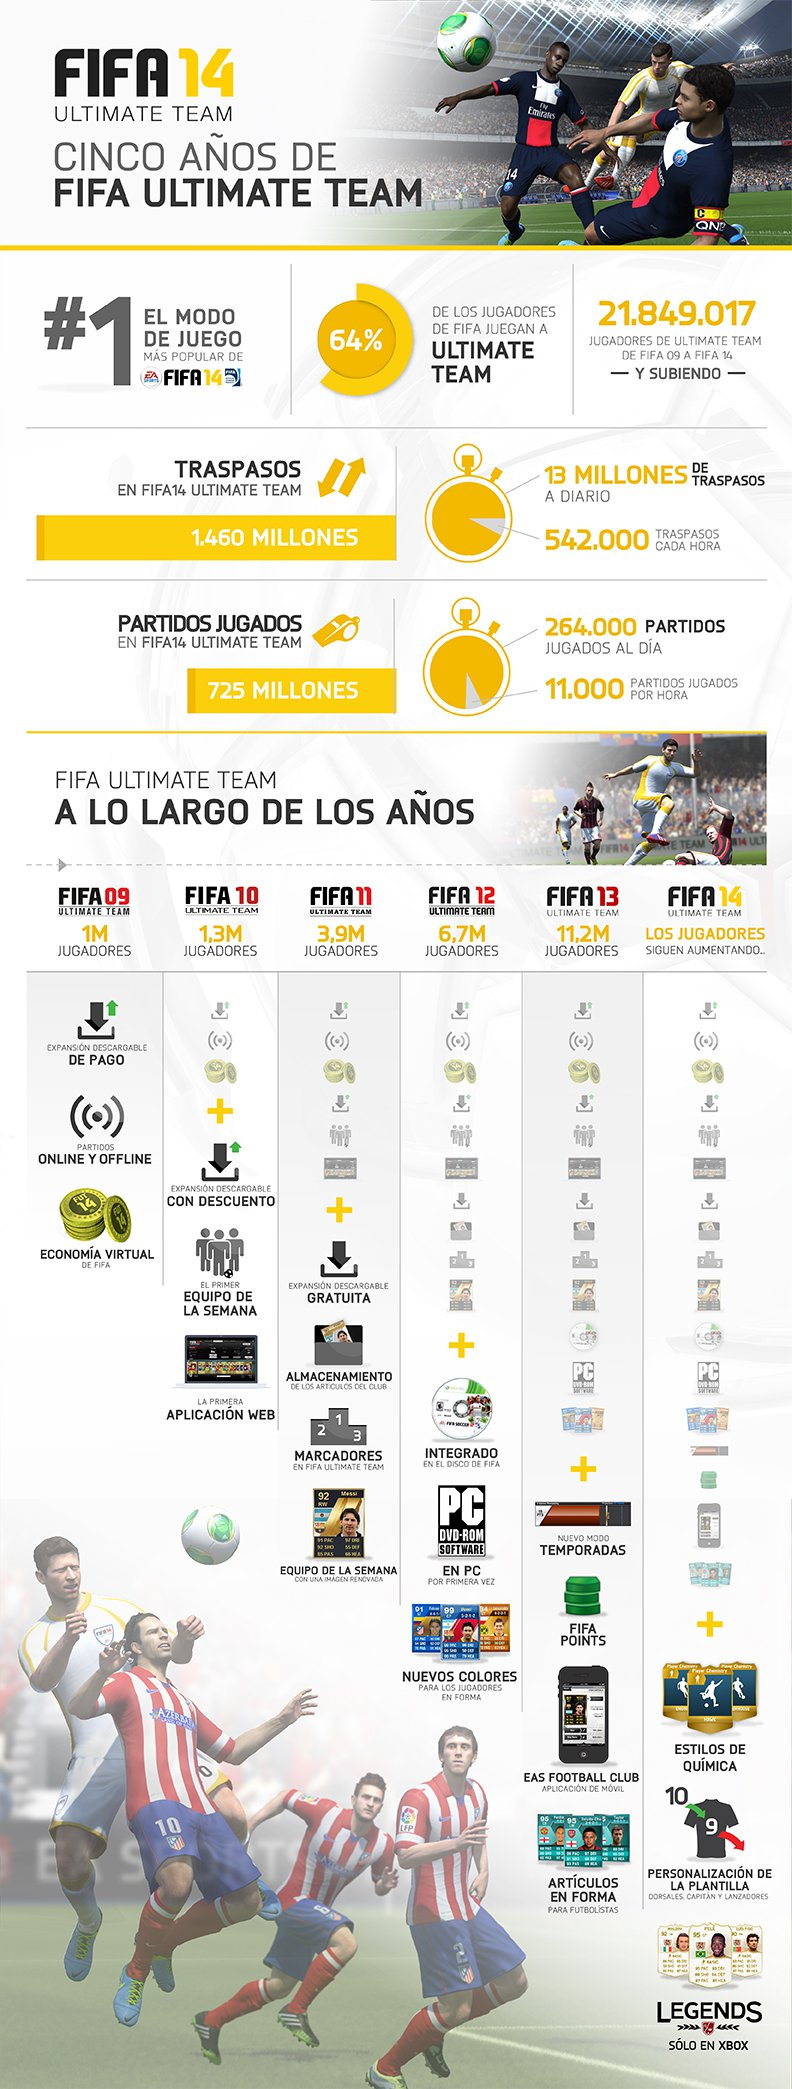 FUT_5year_infographic_Final_es